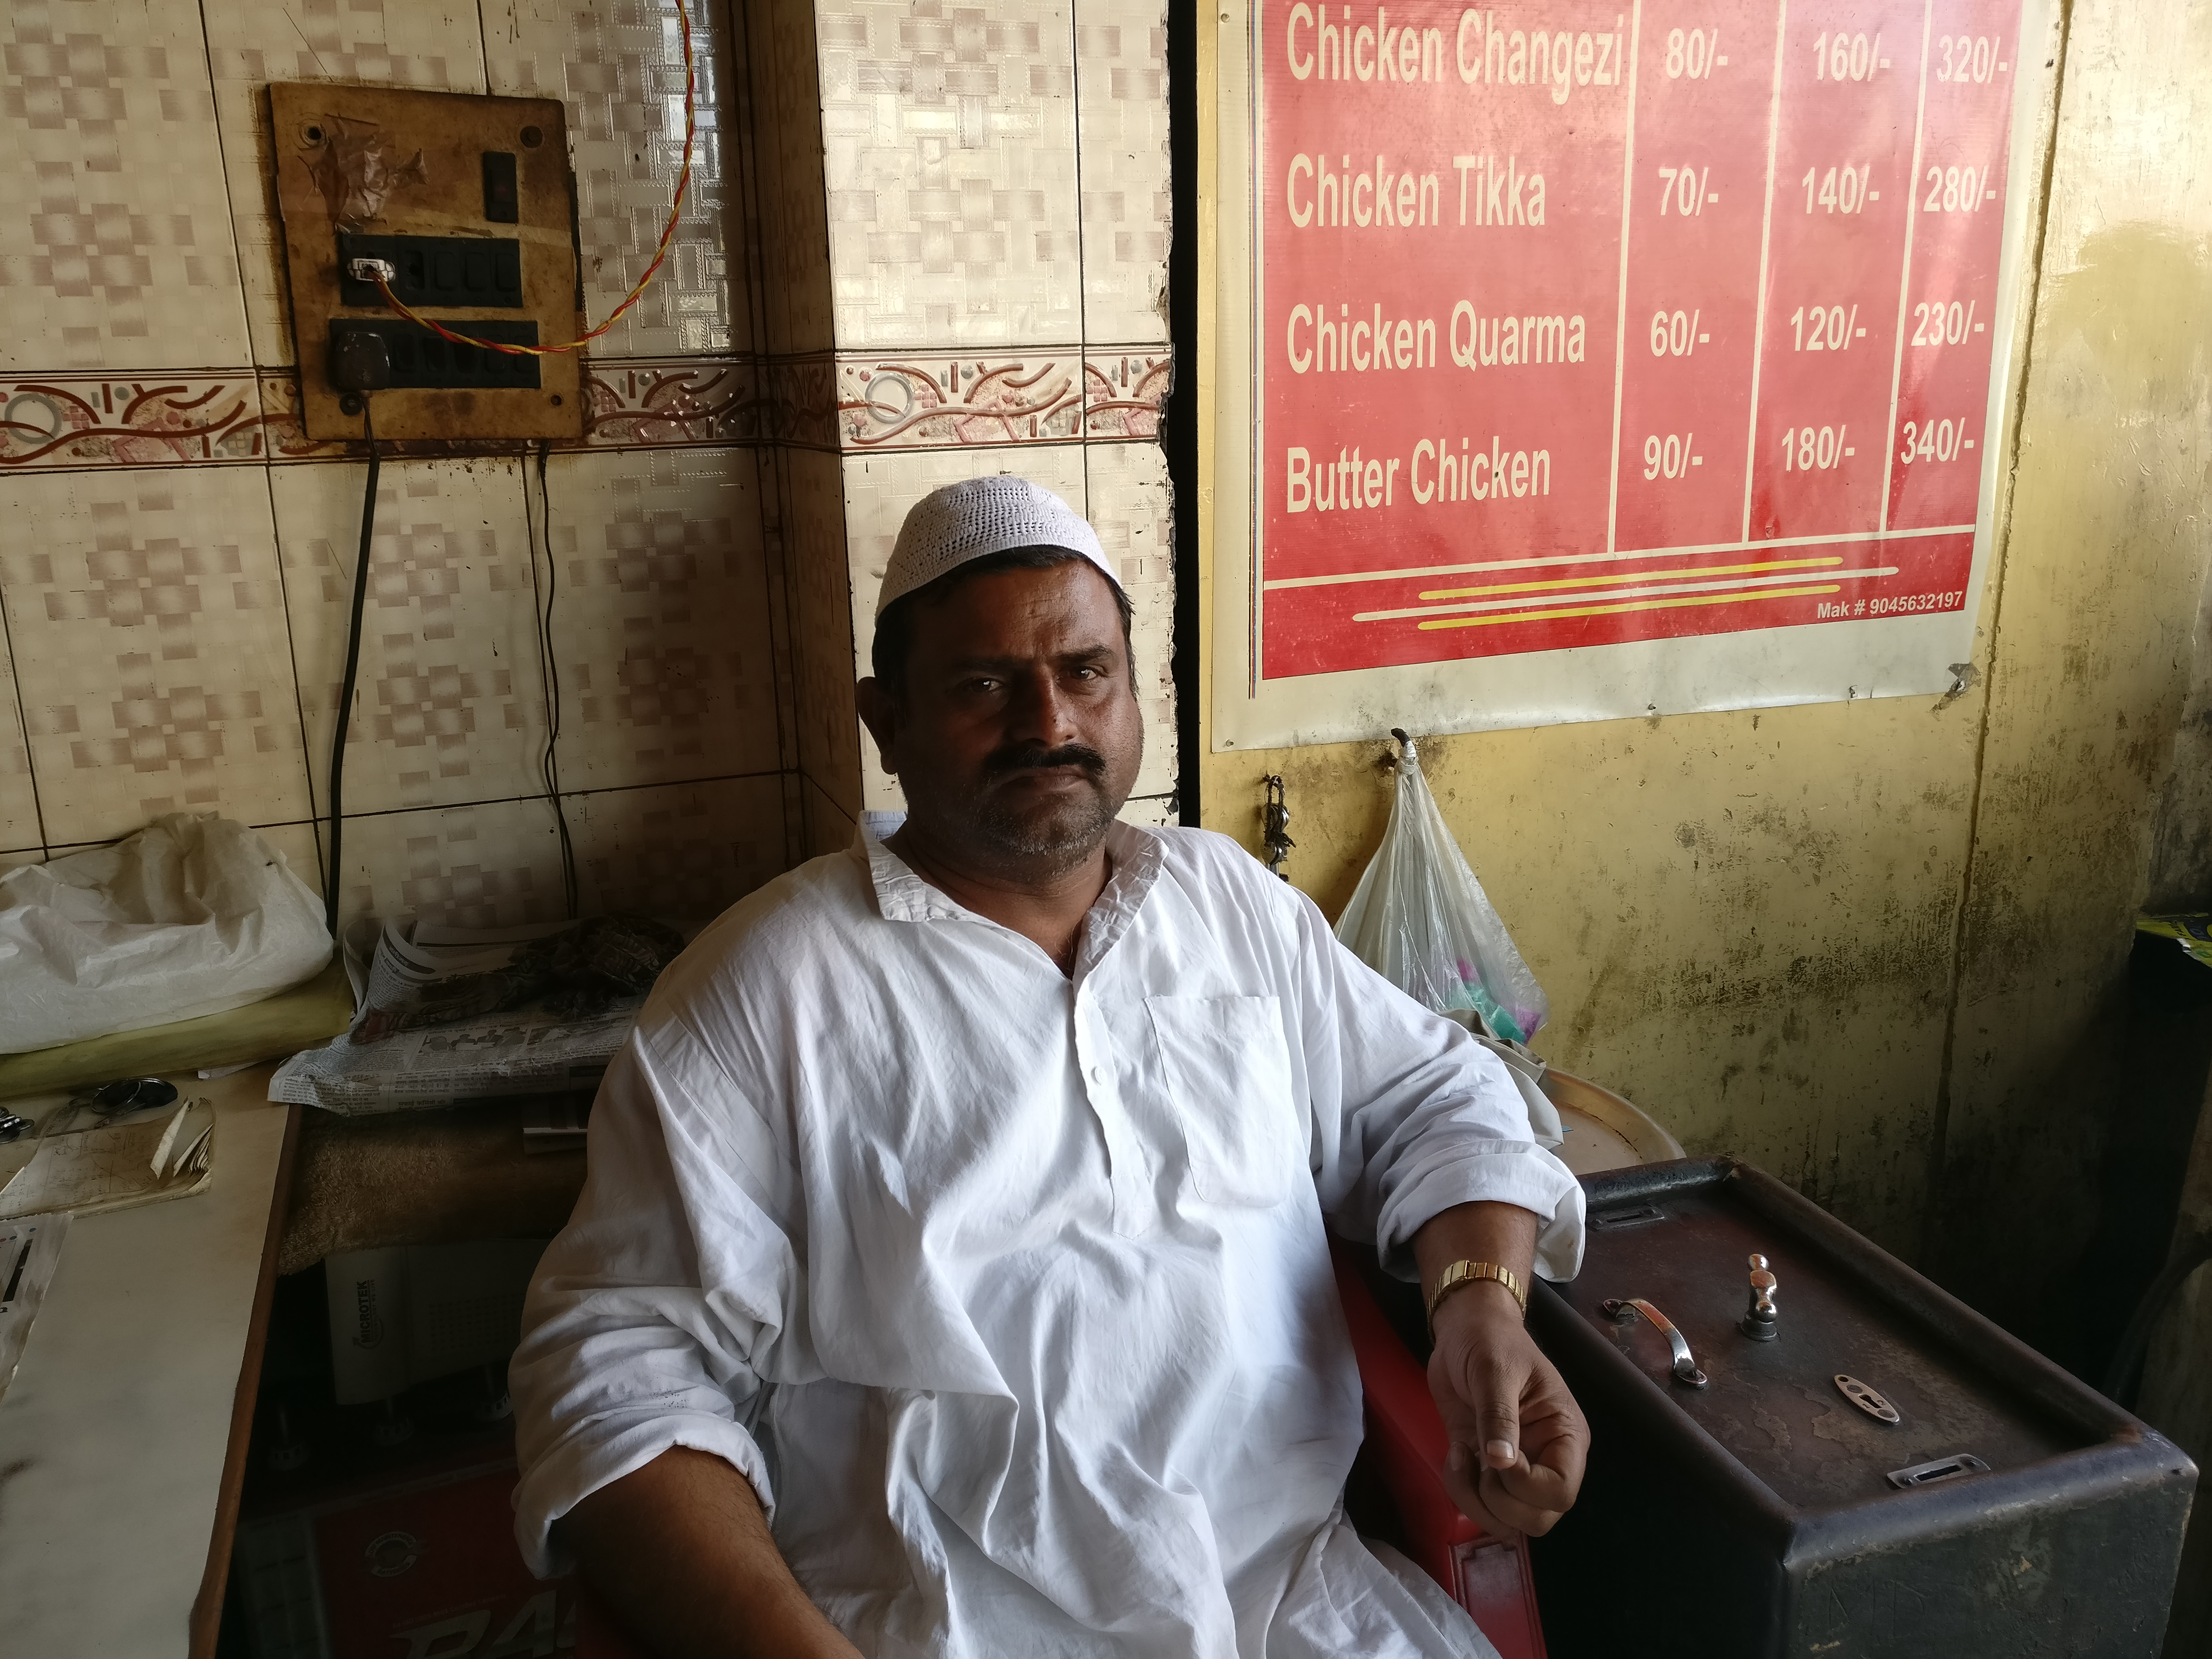 Owner of a small eatery in Aligarh, Mohammad Rashid is struggling to procure enough buffalo meat to match demand